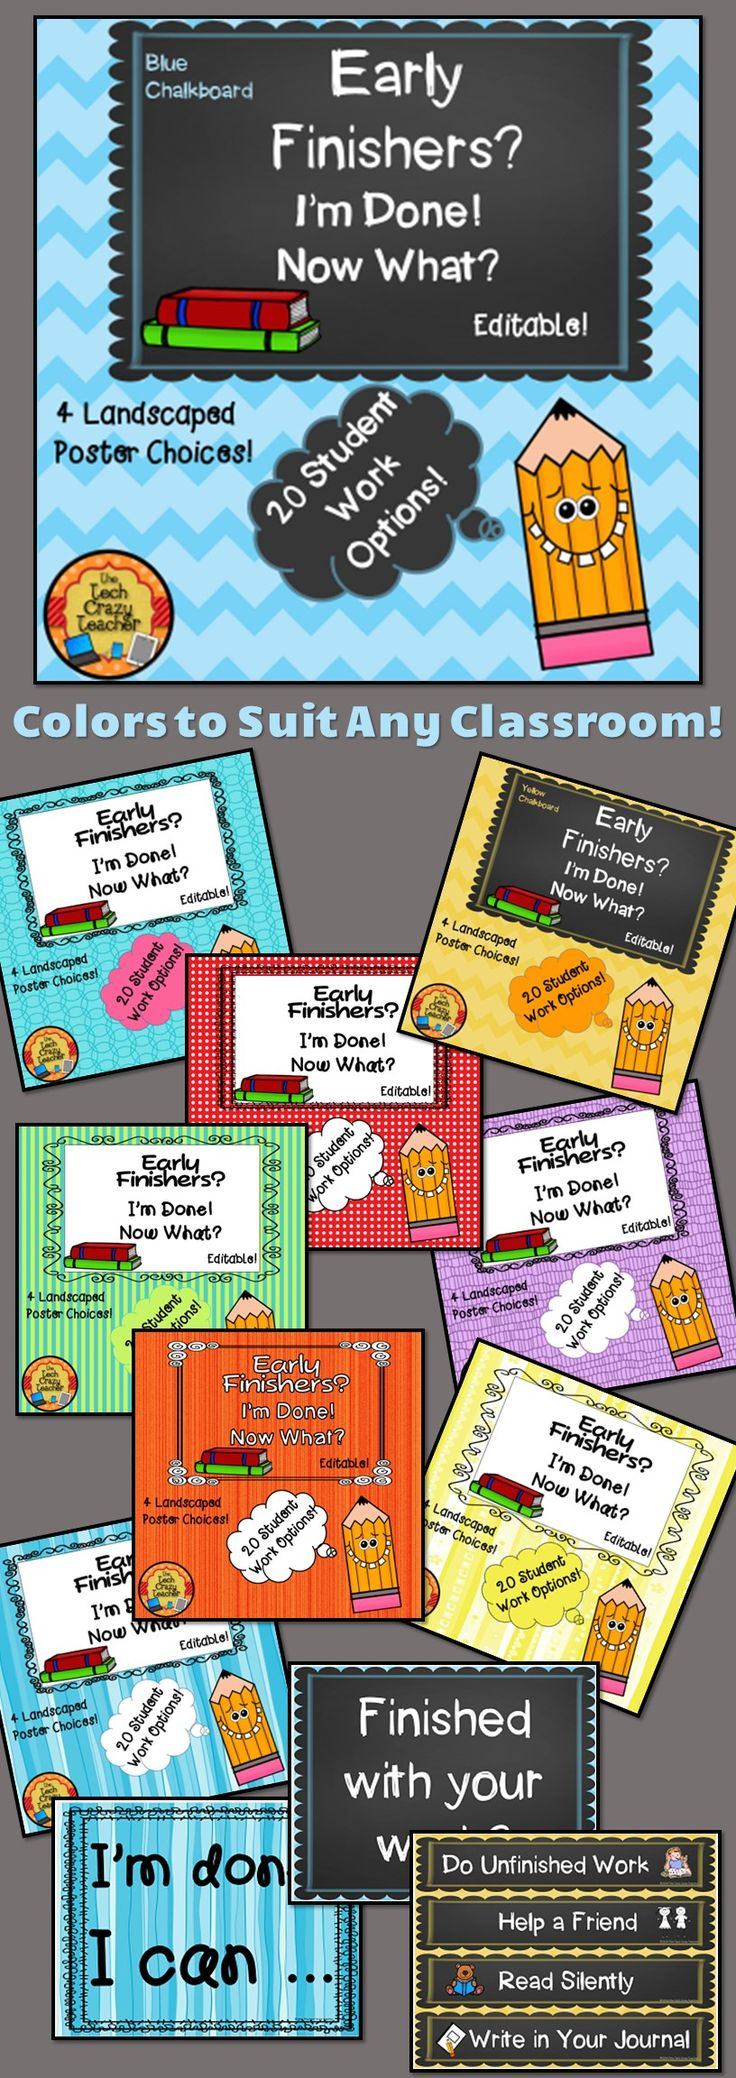 """Tired of hearing, """"I'm done! What do I do now?"""" all the time even though you have given directions on what to do next? This classroom management printable will help your early finishers know what to do """"next"""". This product gives students a list of """"to do"""" items to keep them engaged in the learning process if they finish their work early. Included are 4 landscaped posters to display and 20 different learning choices for students. My favorite is the """"I can"""" poster. $"""